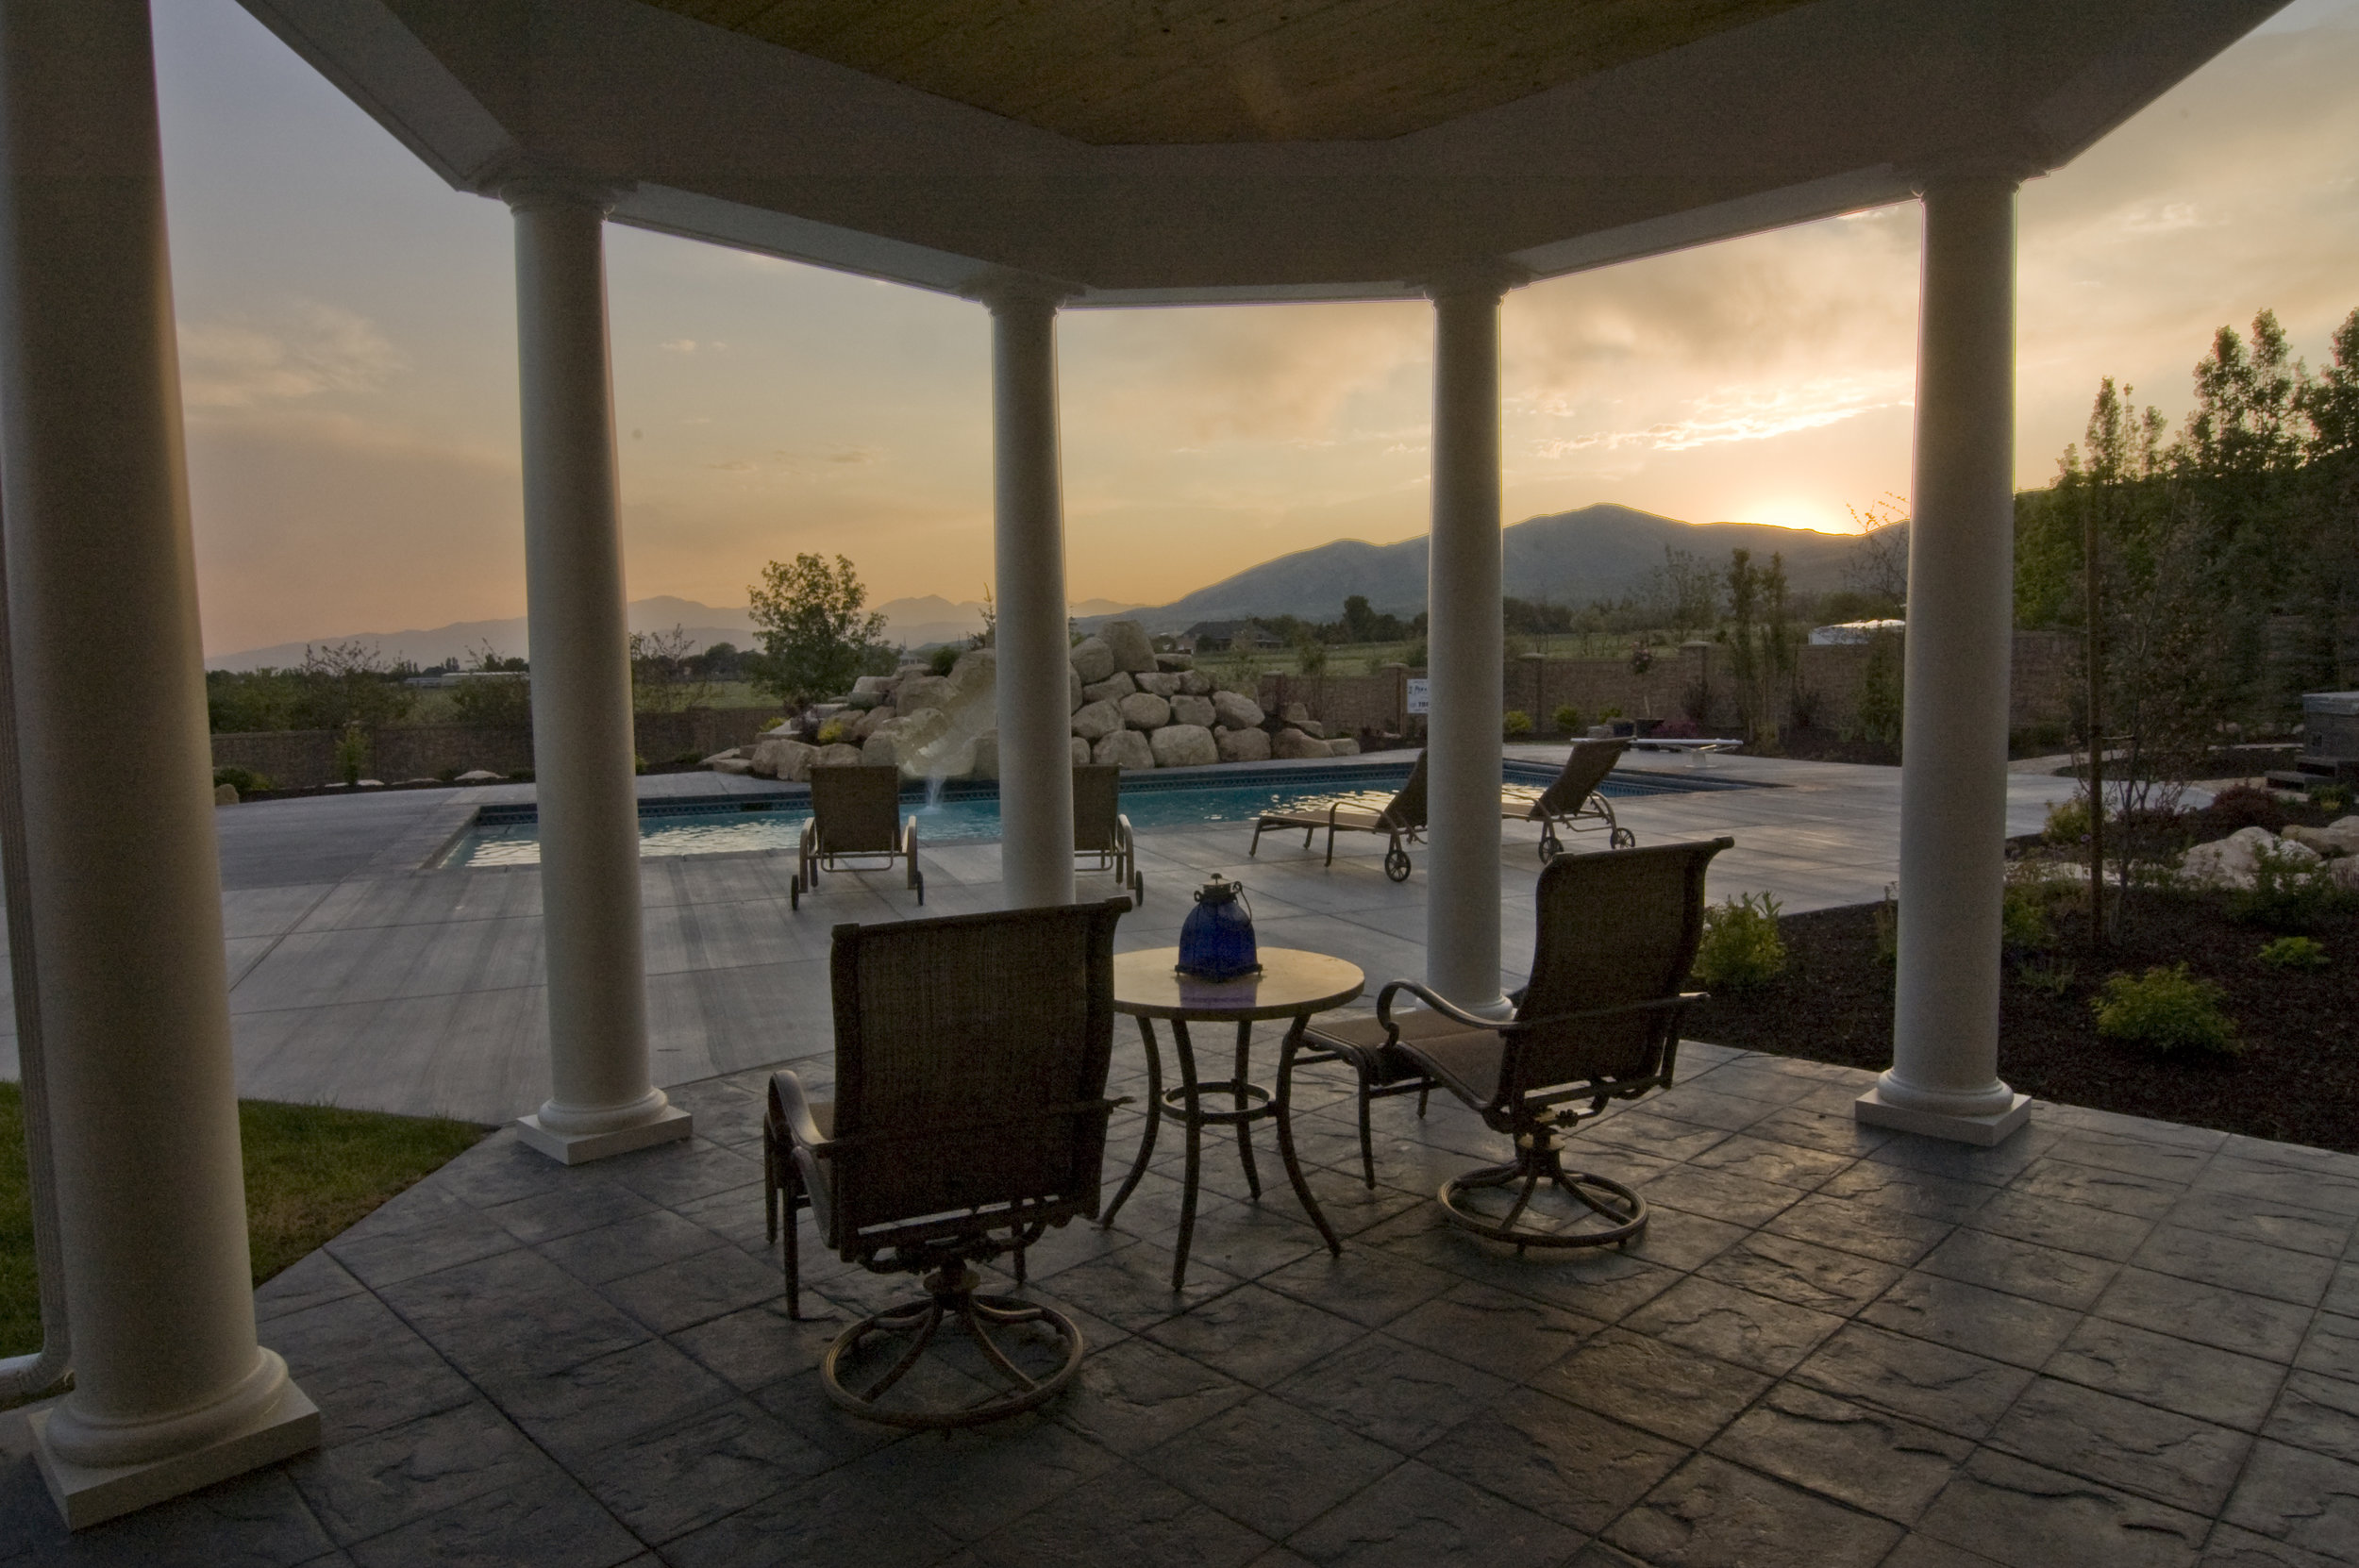 Patio and beautiful pool view with sunset.